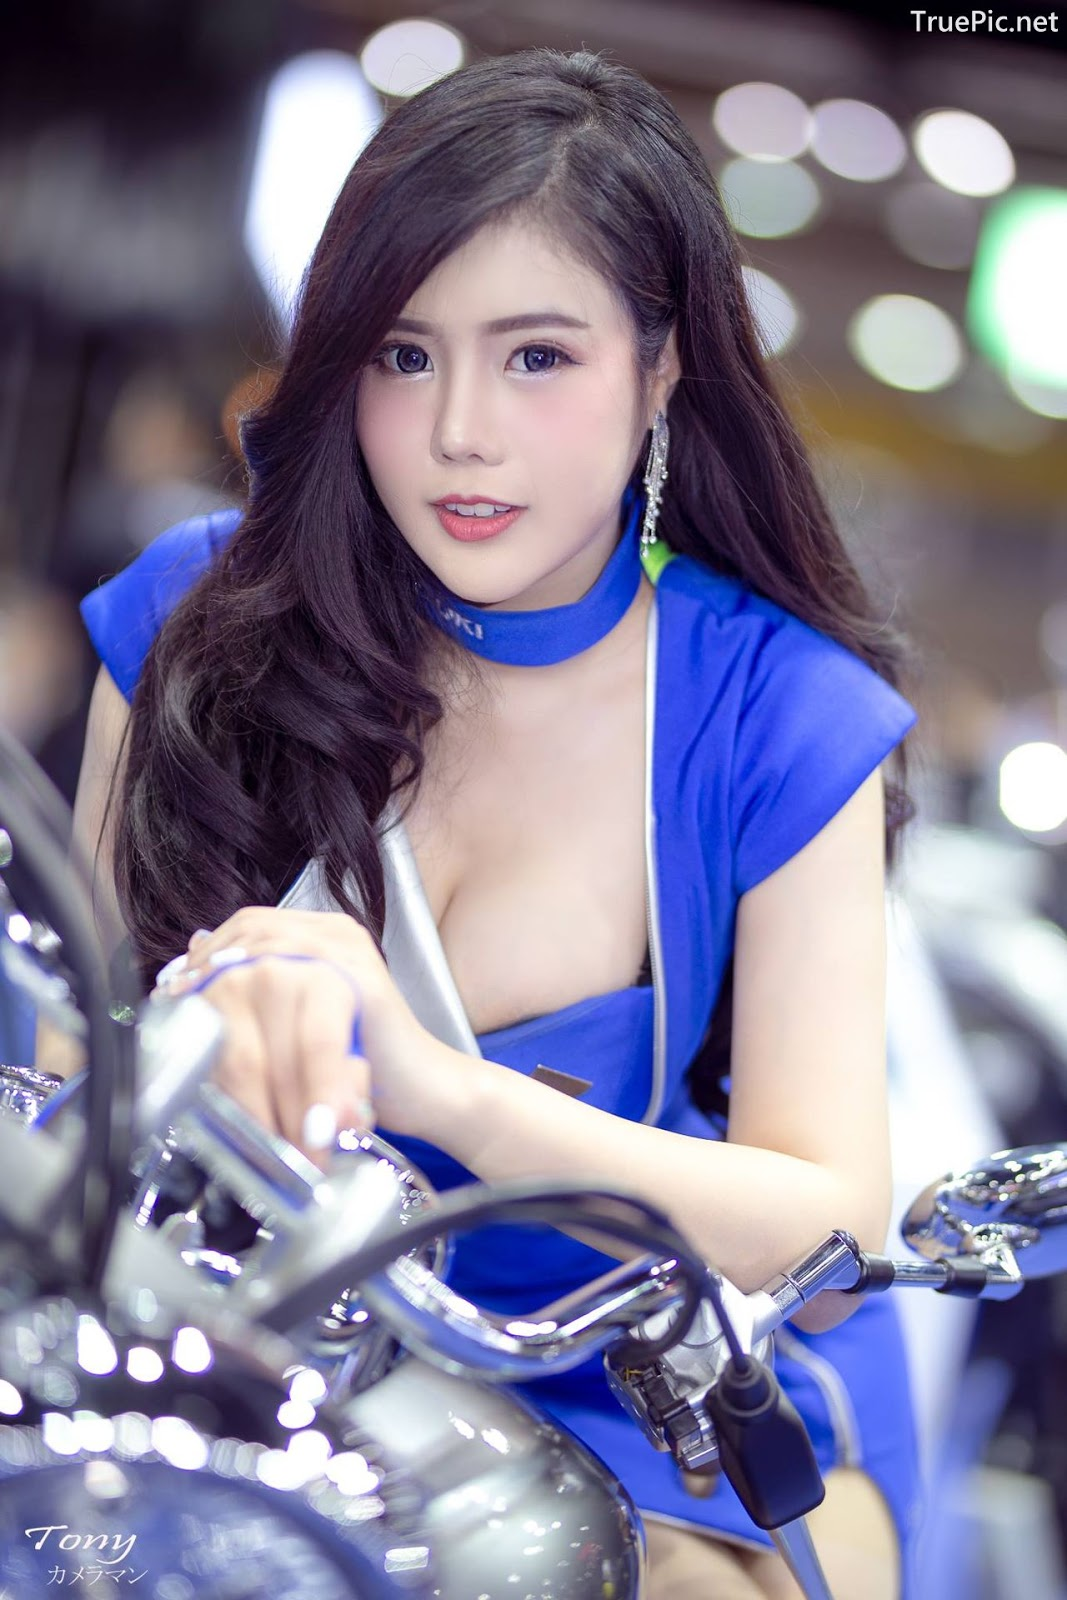 Image-Thailand-Hot-Model-Thai-Racing-Girl-At-Big-Motor-2018-TruePic.net- Picture-1